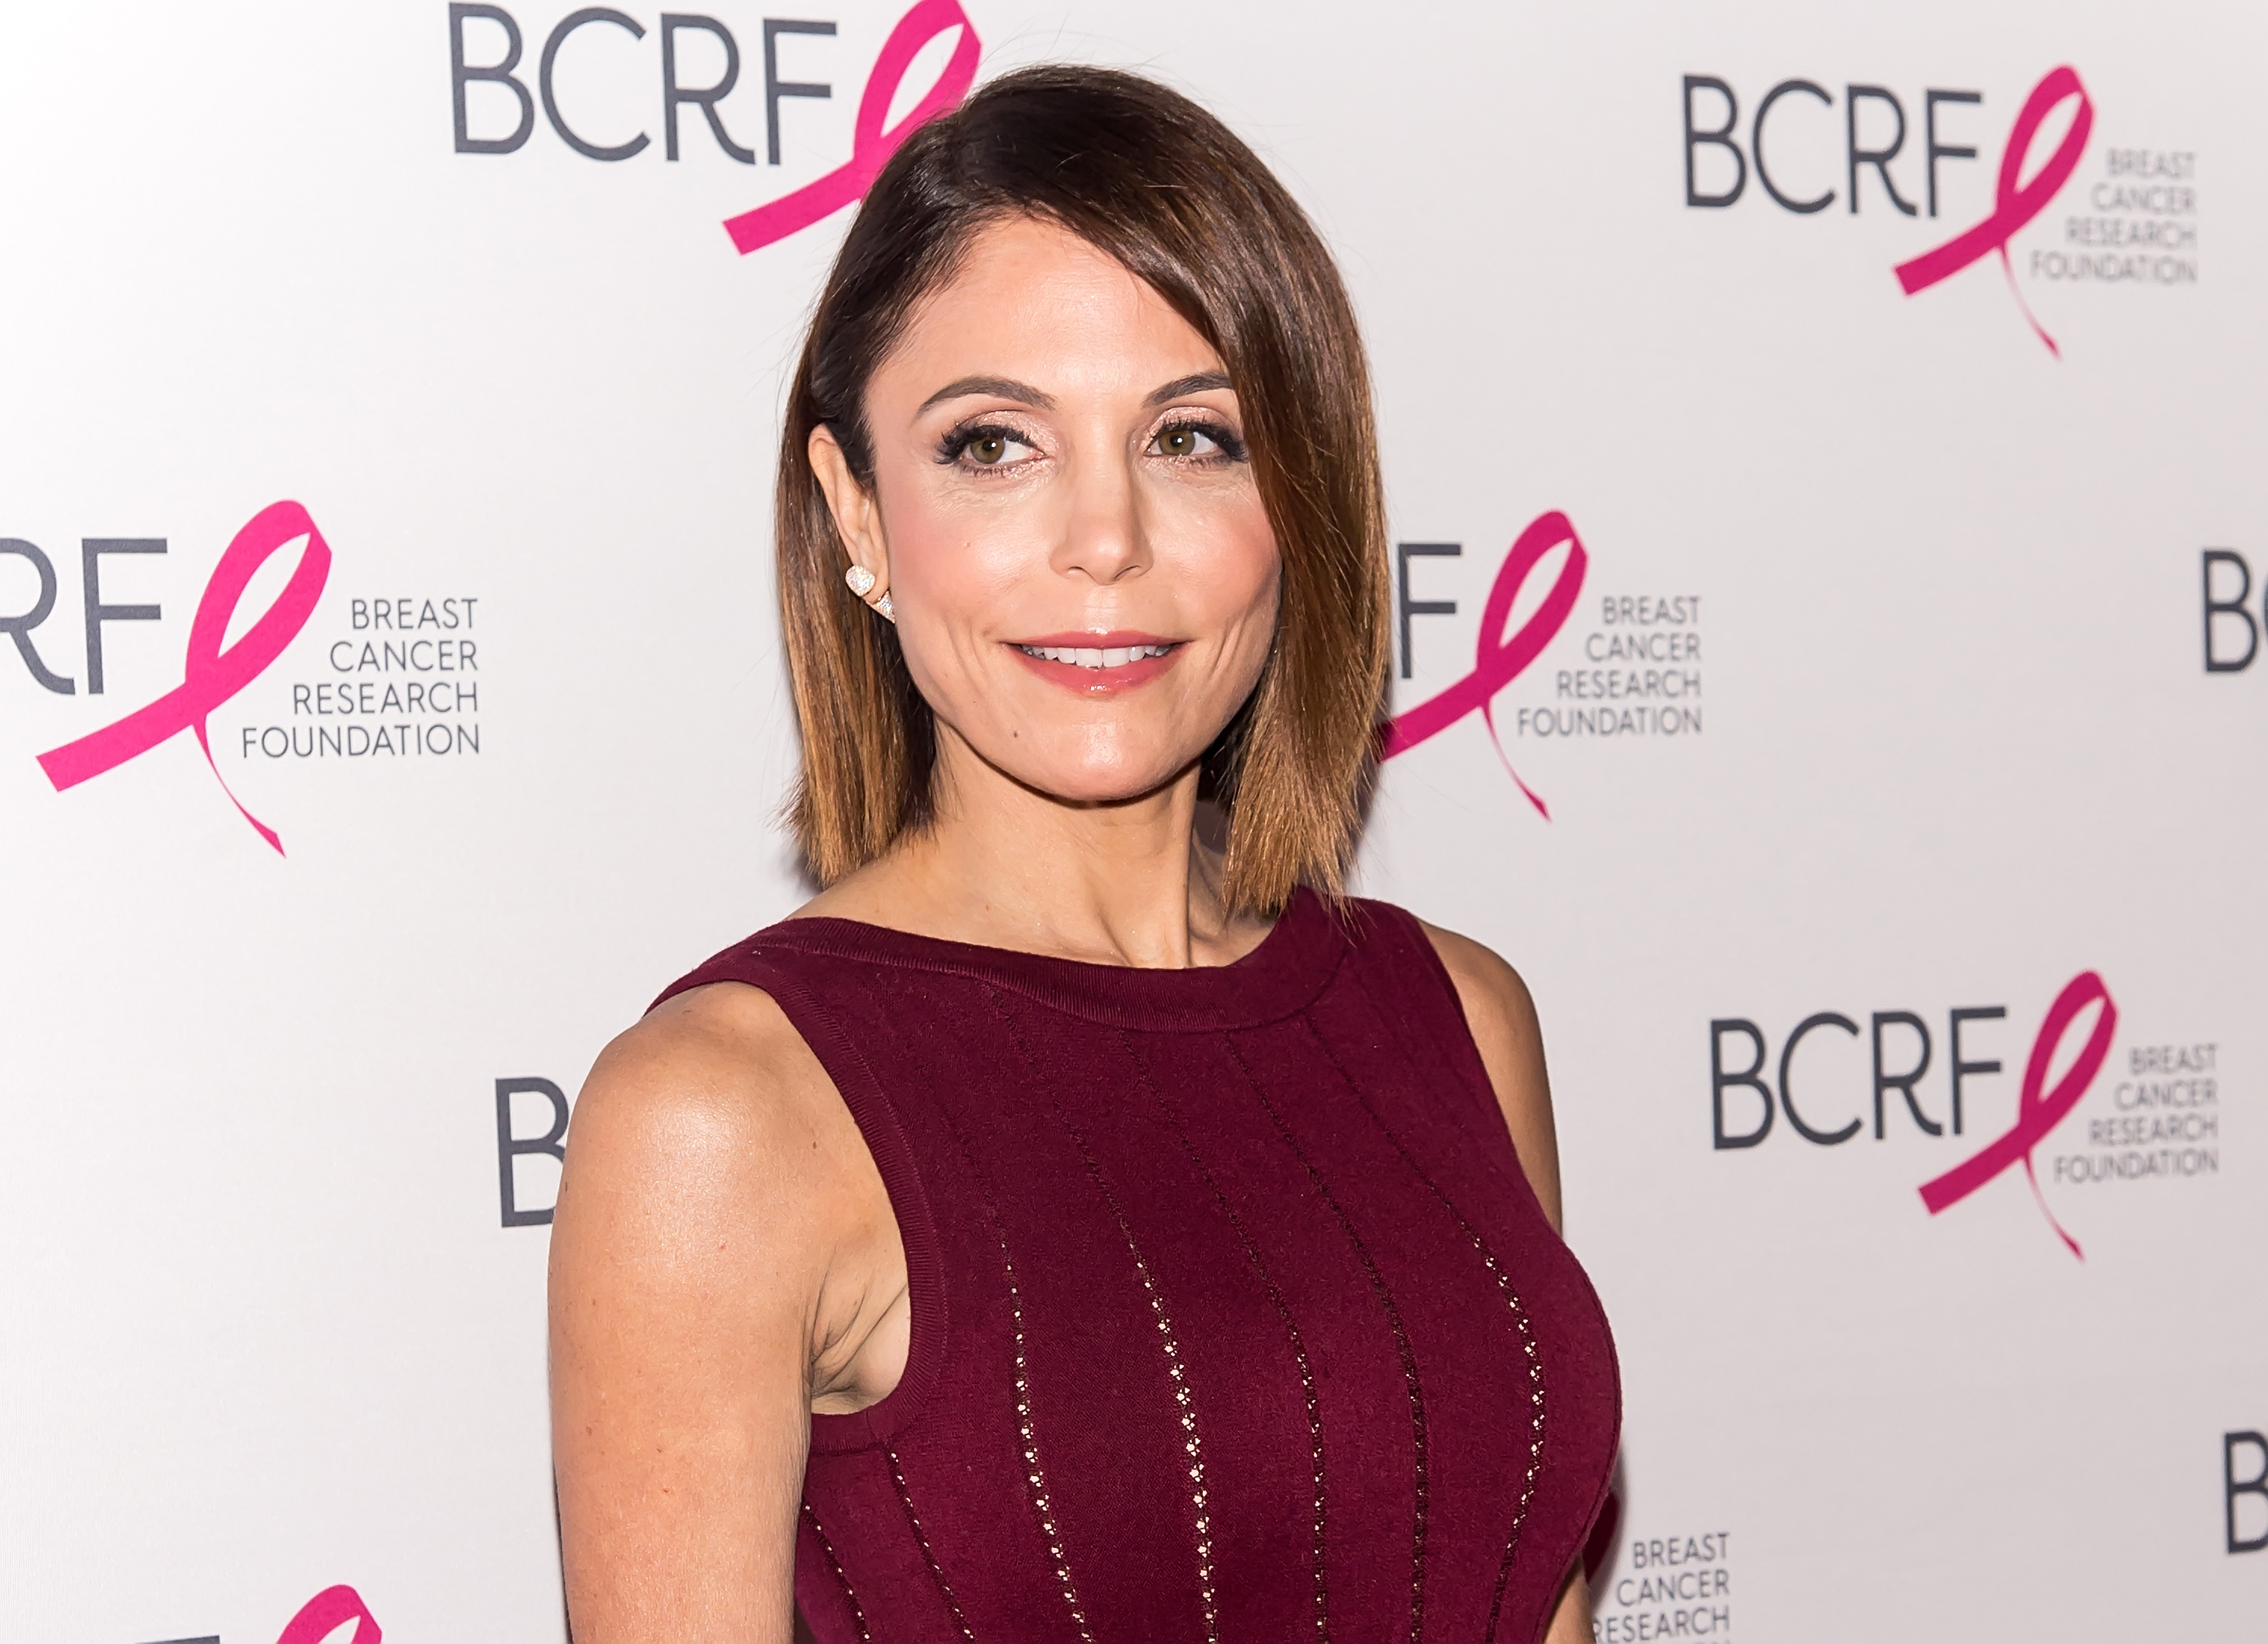 Bethenny Frankel attends the Breast Cancer Research Foundation Hot Pink Party at in New York City, on April 12, 2016.